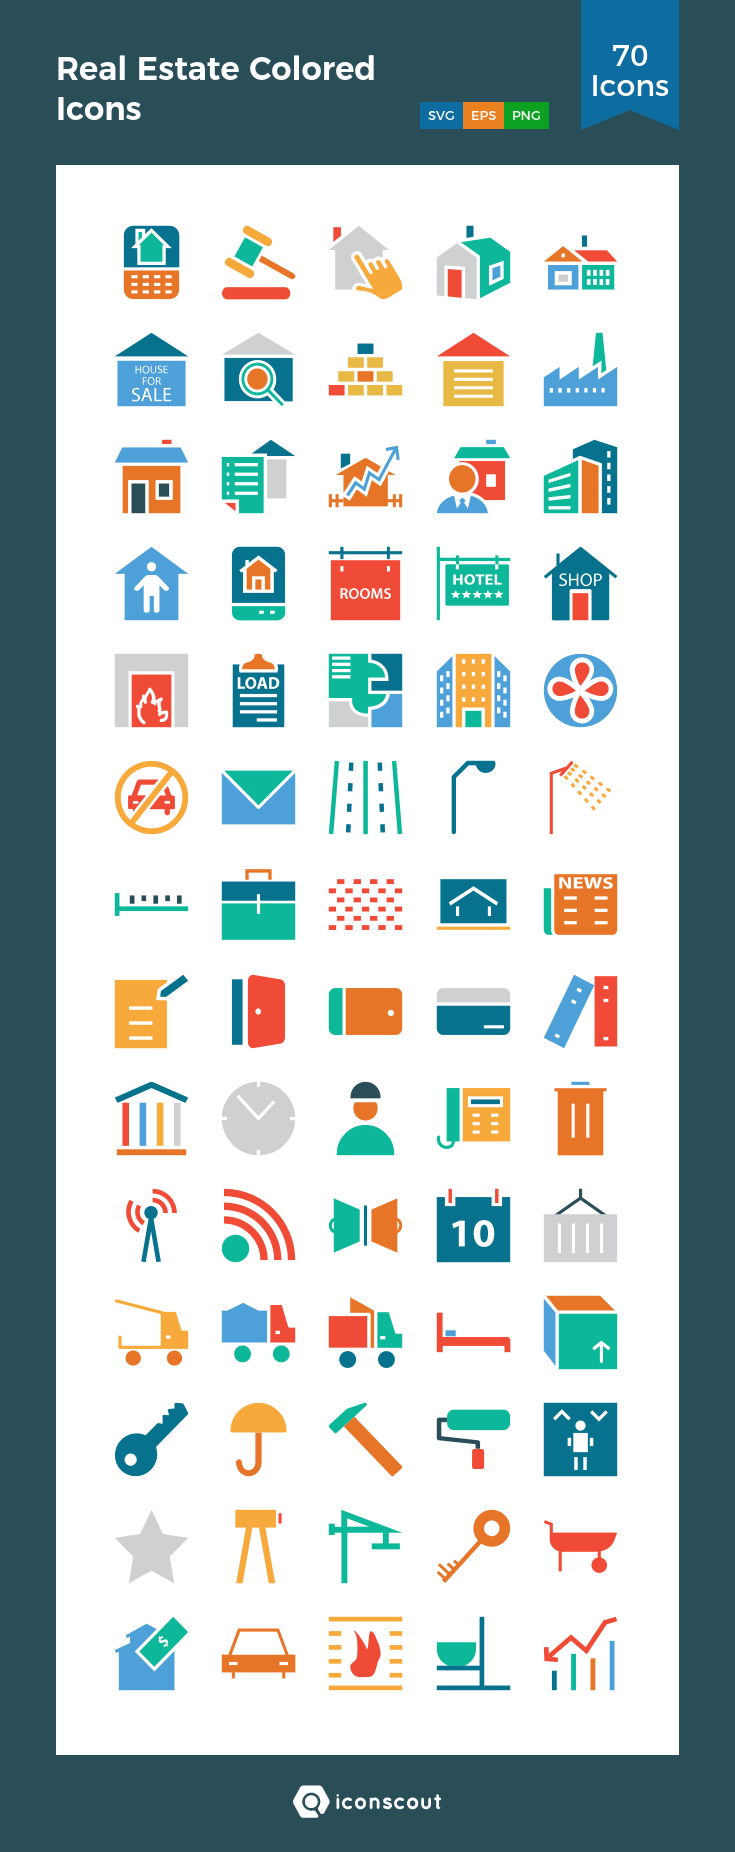 Download Real Estate Colored Icons Icon pack Available